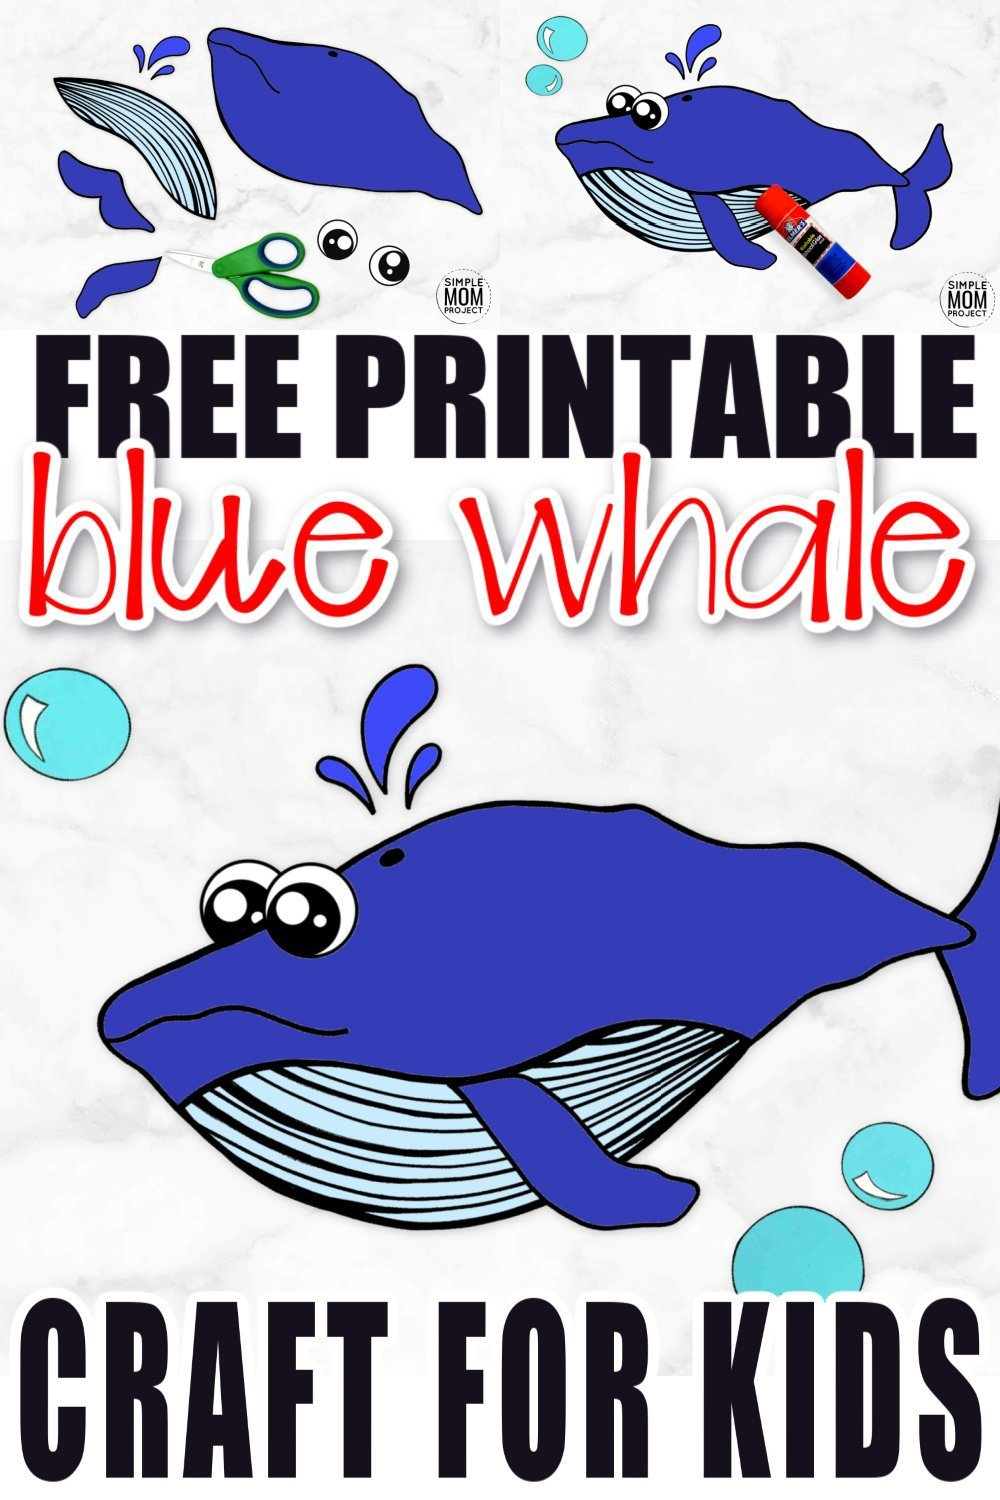 Free Printable Blue Whale Craft Ocean Animal Craft for Kids, preschoolers and toddlers